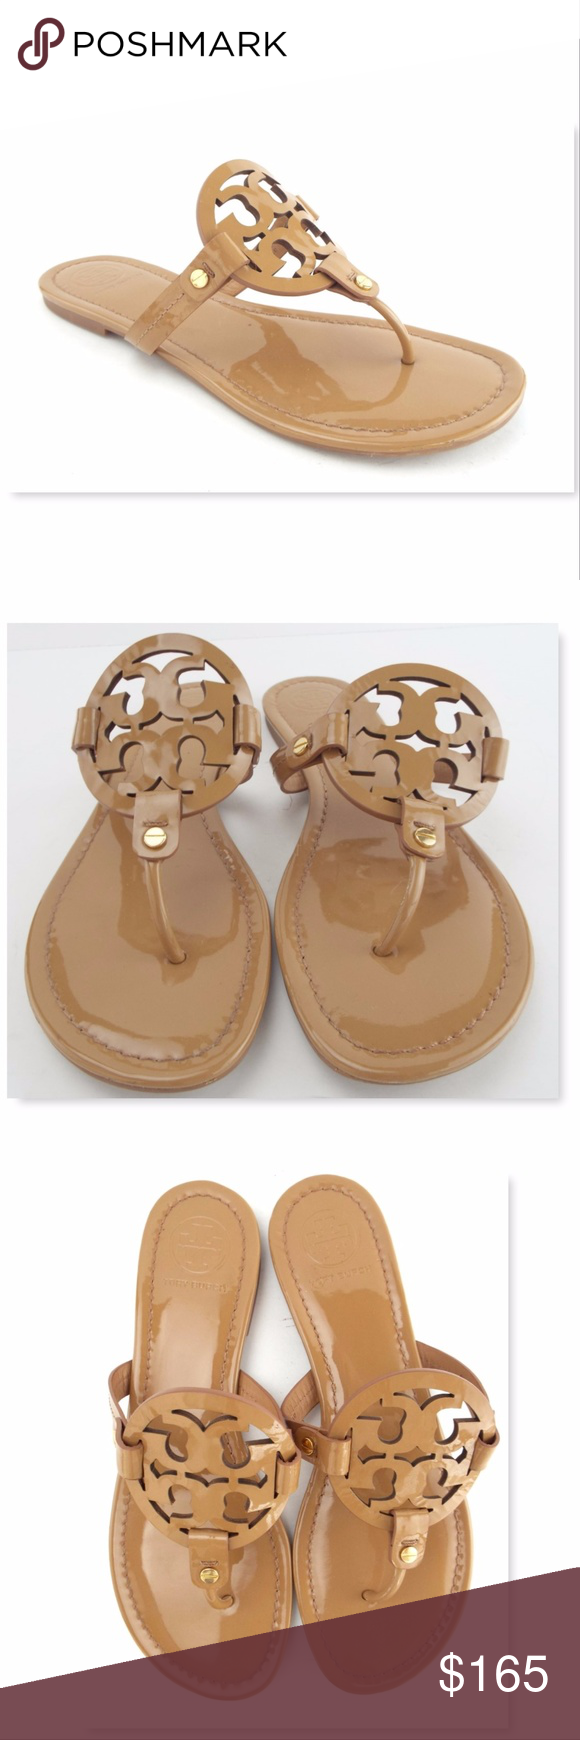 19d7868967146 TORY BURCH Size 9.5 MILLER Tan Patent Thong Sandal TORY BURCH 100% Authentic !